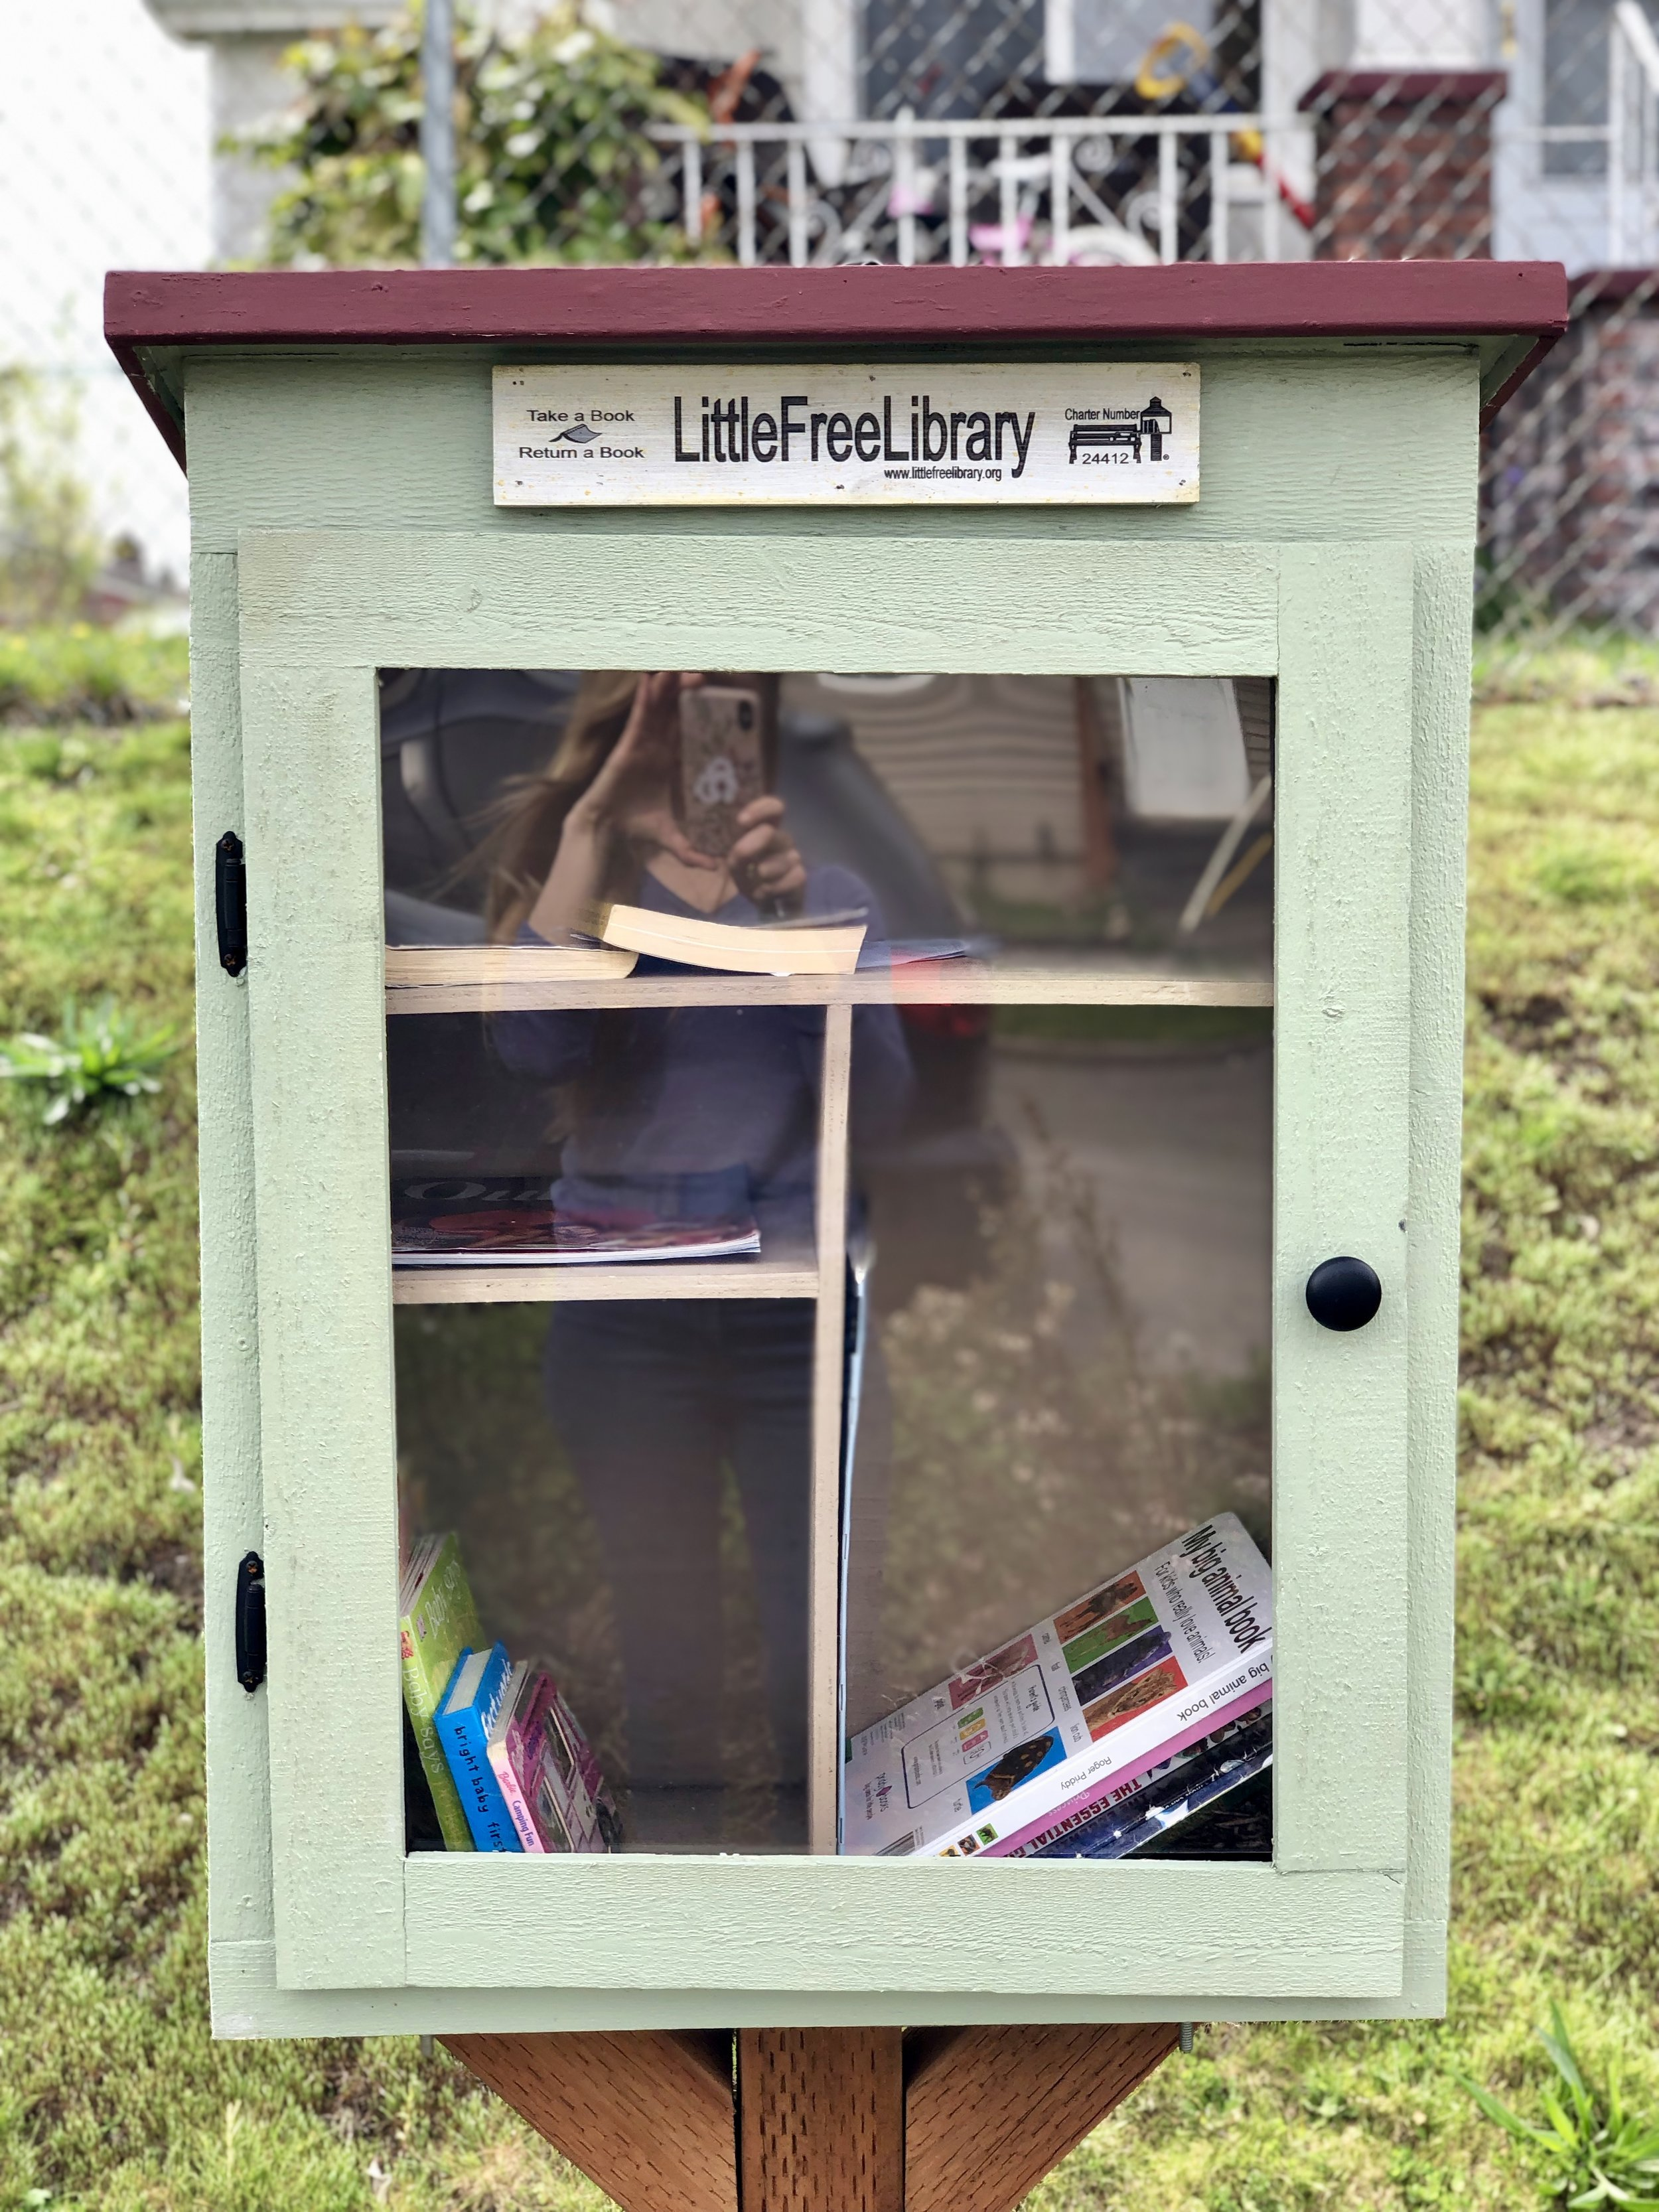 Little Free Libraries like this one on M St. get a lot of traffic! Let's go from this…